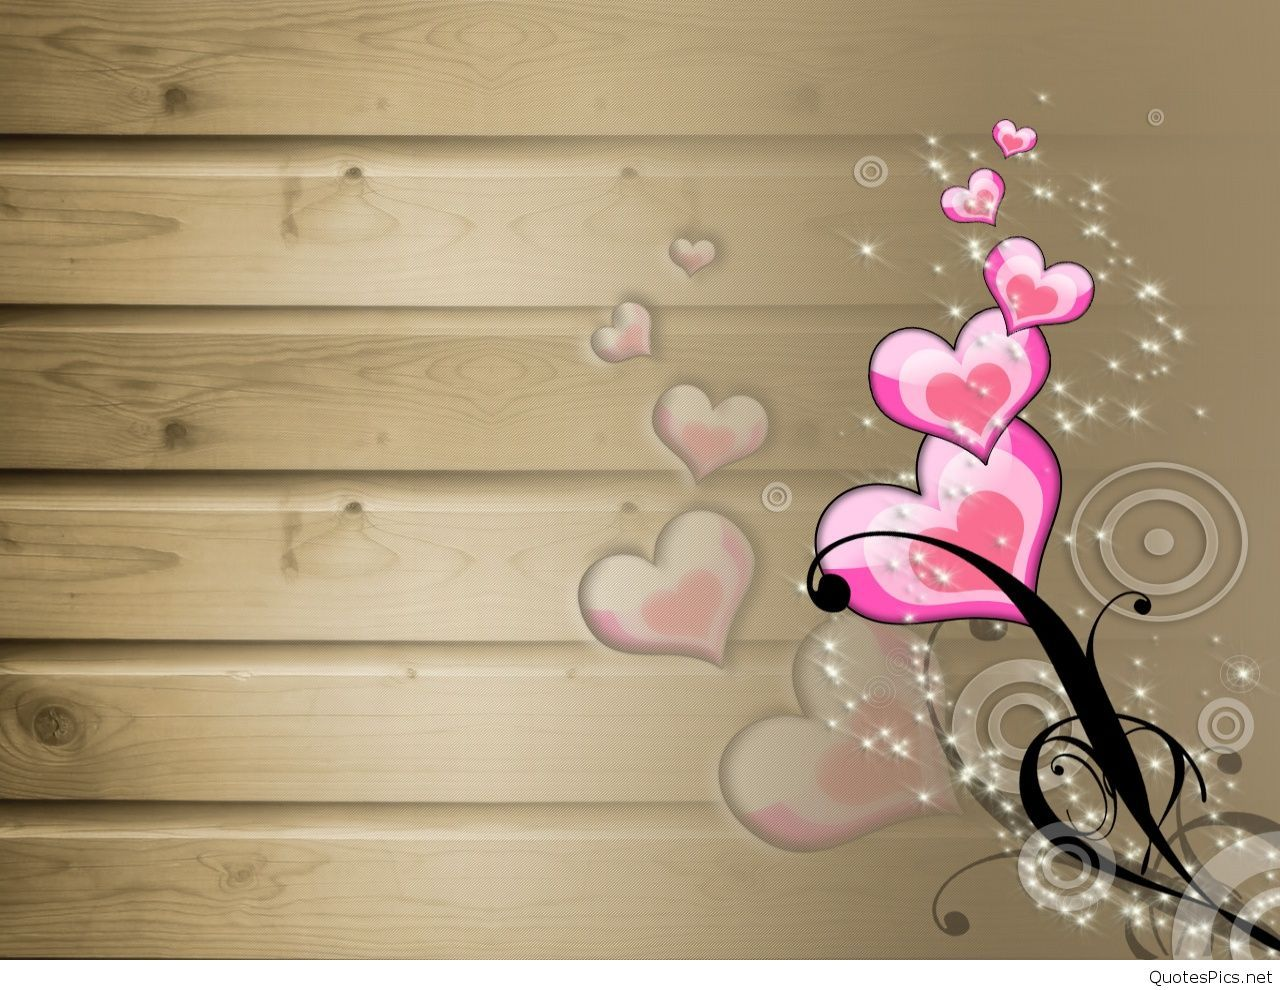 Cute Love Wallpaper Full Hd: Cute Love HD Wallpapers For Desktop Best Love Desktop